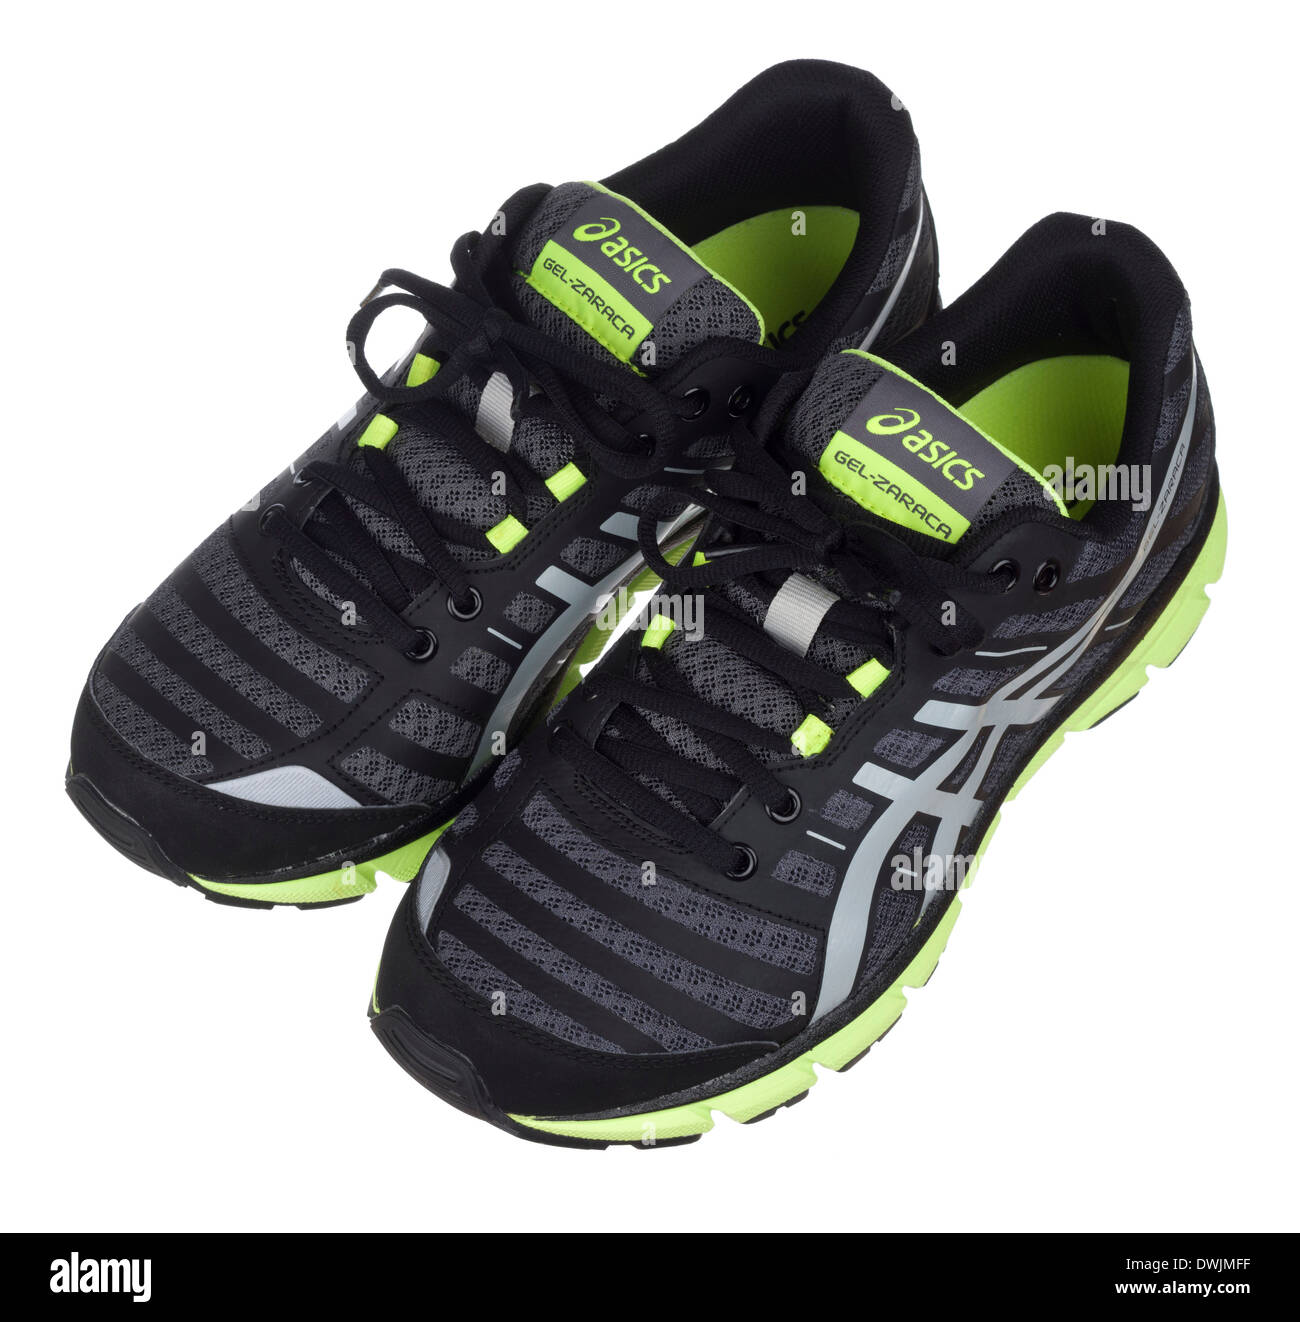 Black and neon green Asics Gel Zaraca 2 running shoes - Stock Image